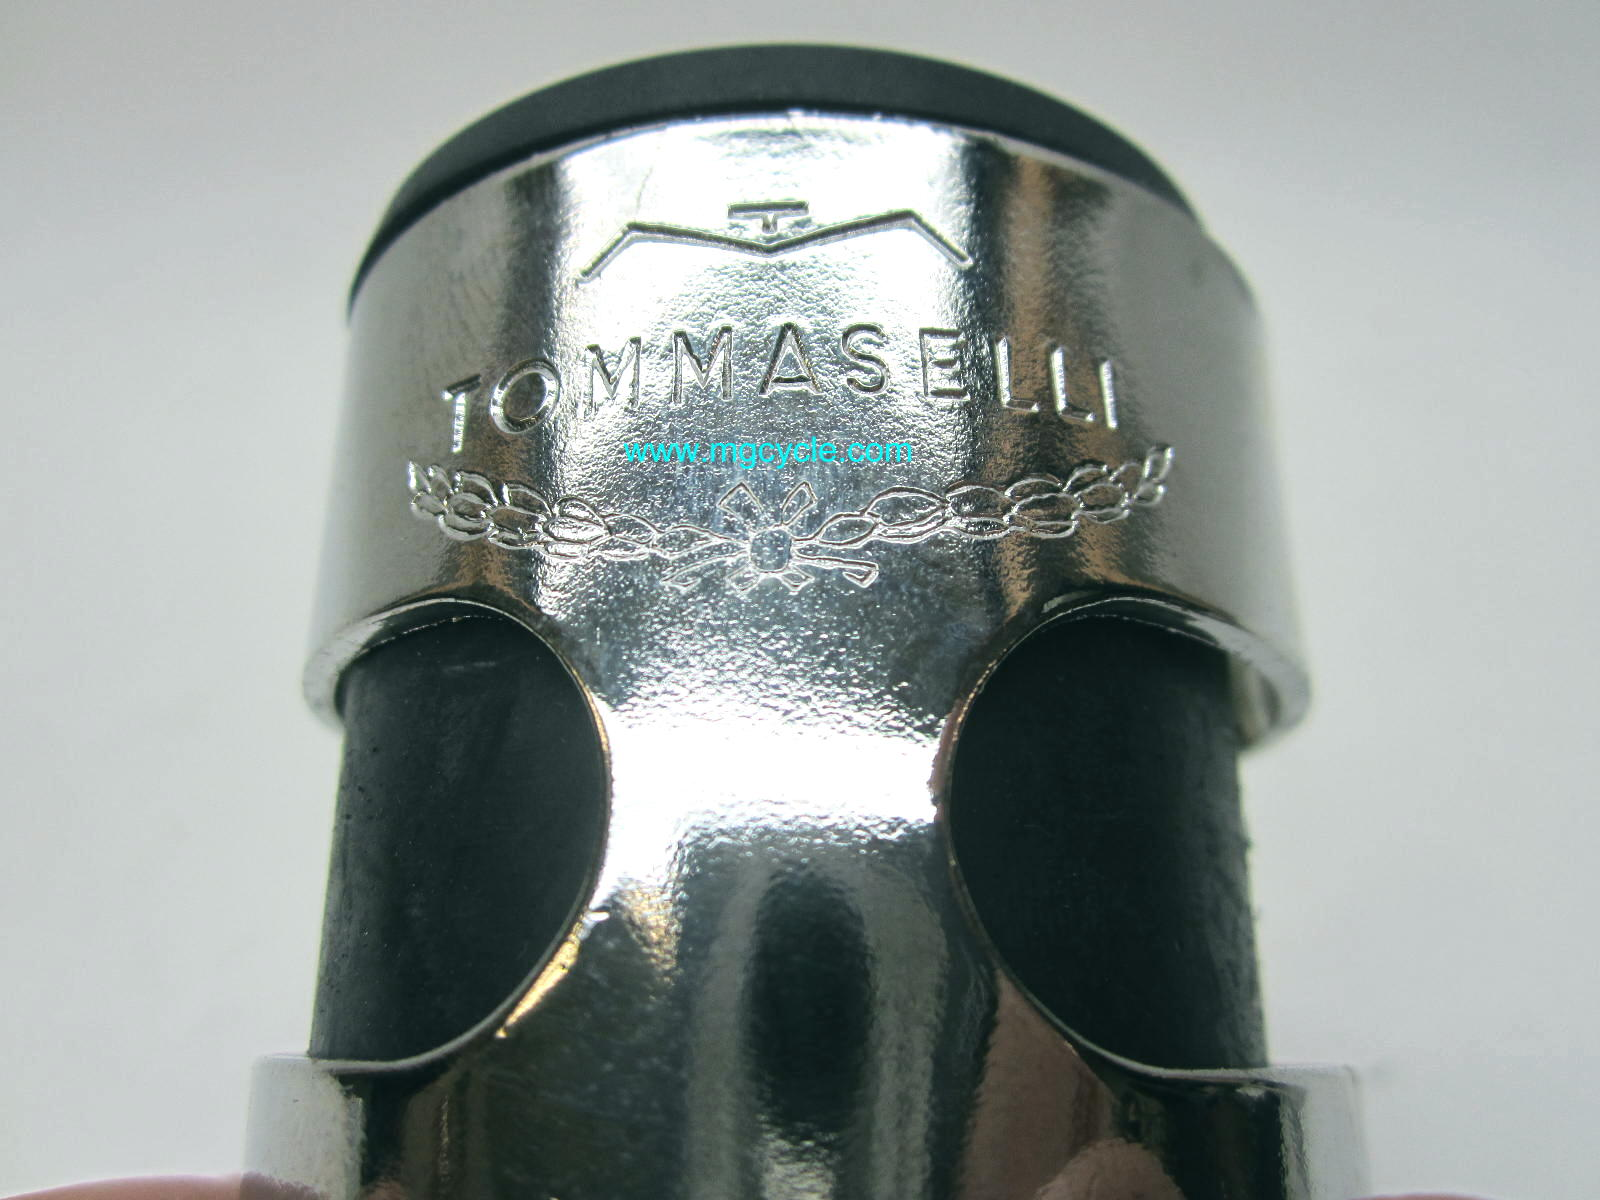 Tommaselli headlight ears, 38mm fork Guzzi Ducati Cafe